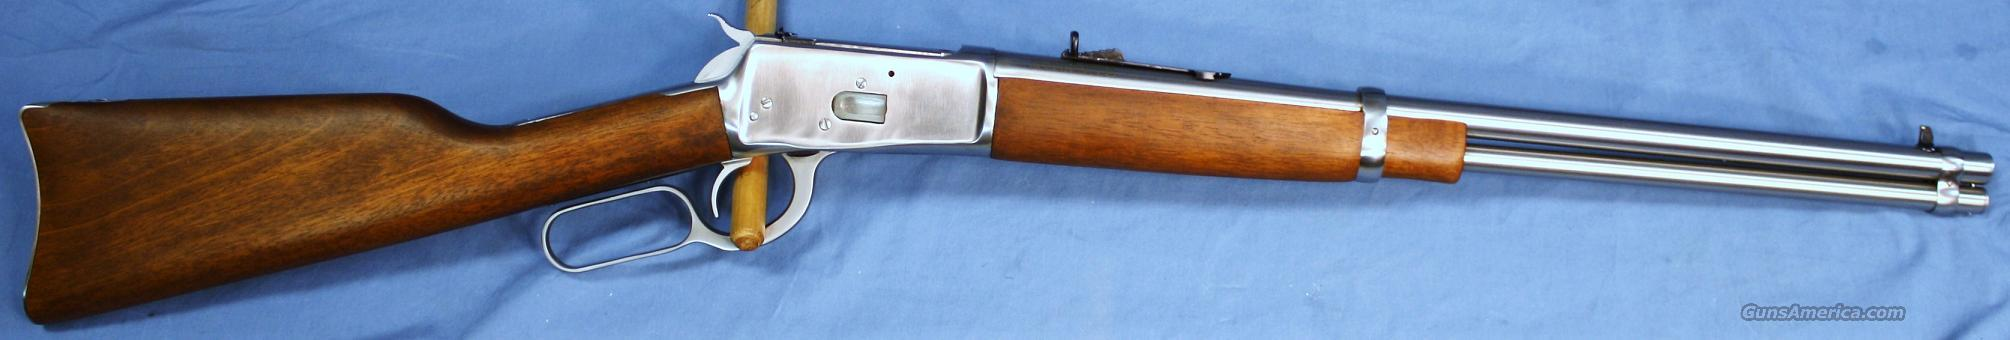 Rossi Model 92 Stainless Lever Action Rifle .357 Magnum  Guns > Rifles > Rossi Rifles > Cowboy